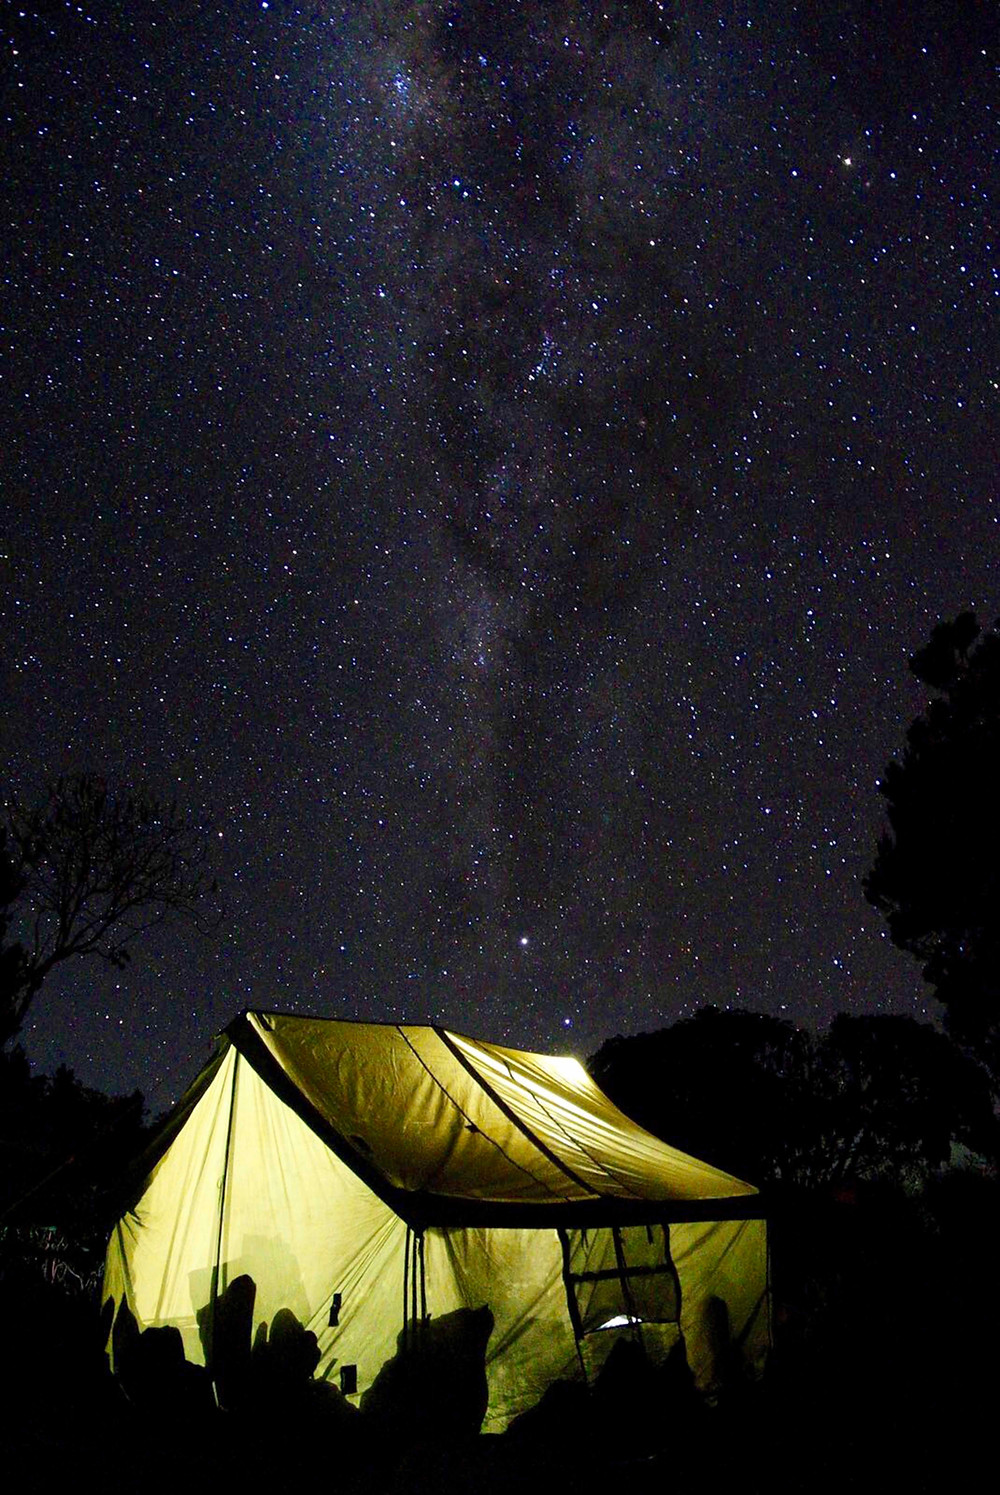 Large, yellow-green, pentagon-shaped, group tent under the milky way and dark night skies in Gatlinburg, Tennessee